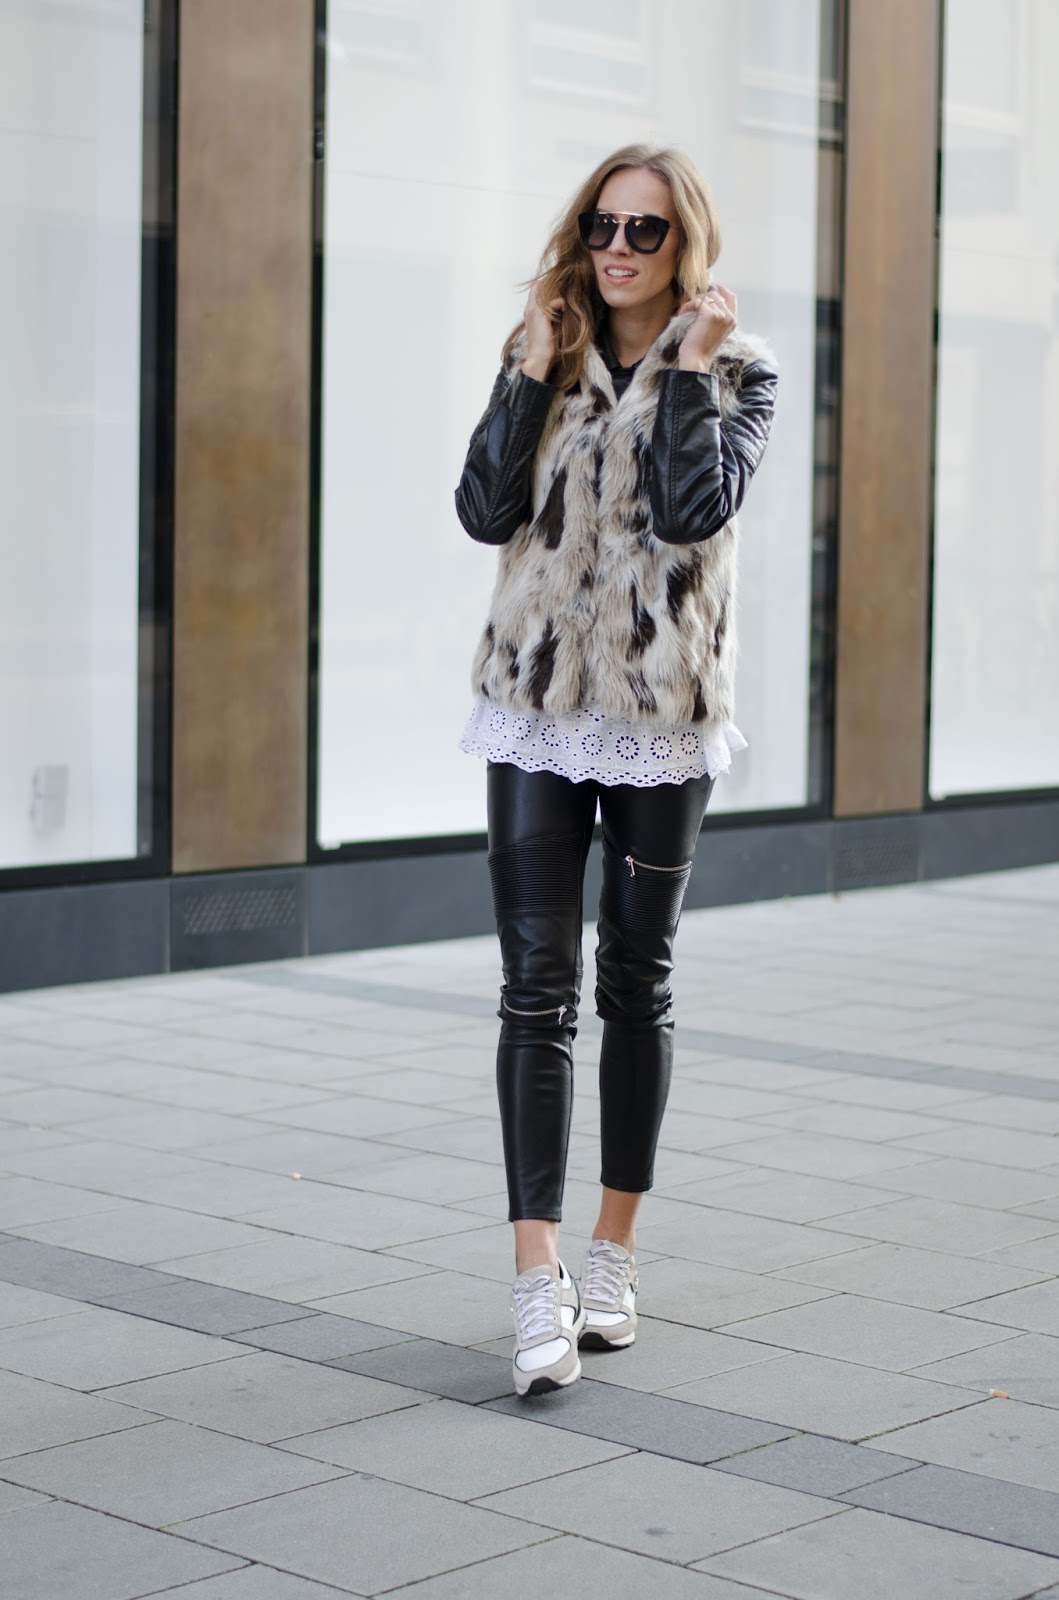 kristjaana mere fall look black white fur vest leahter pants sneakers